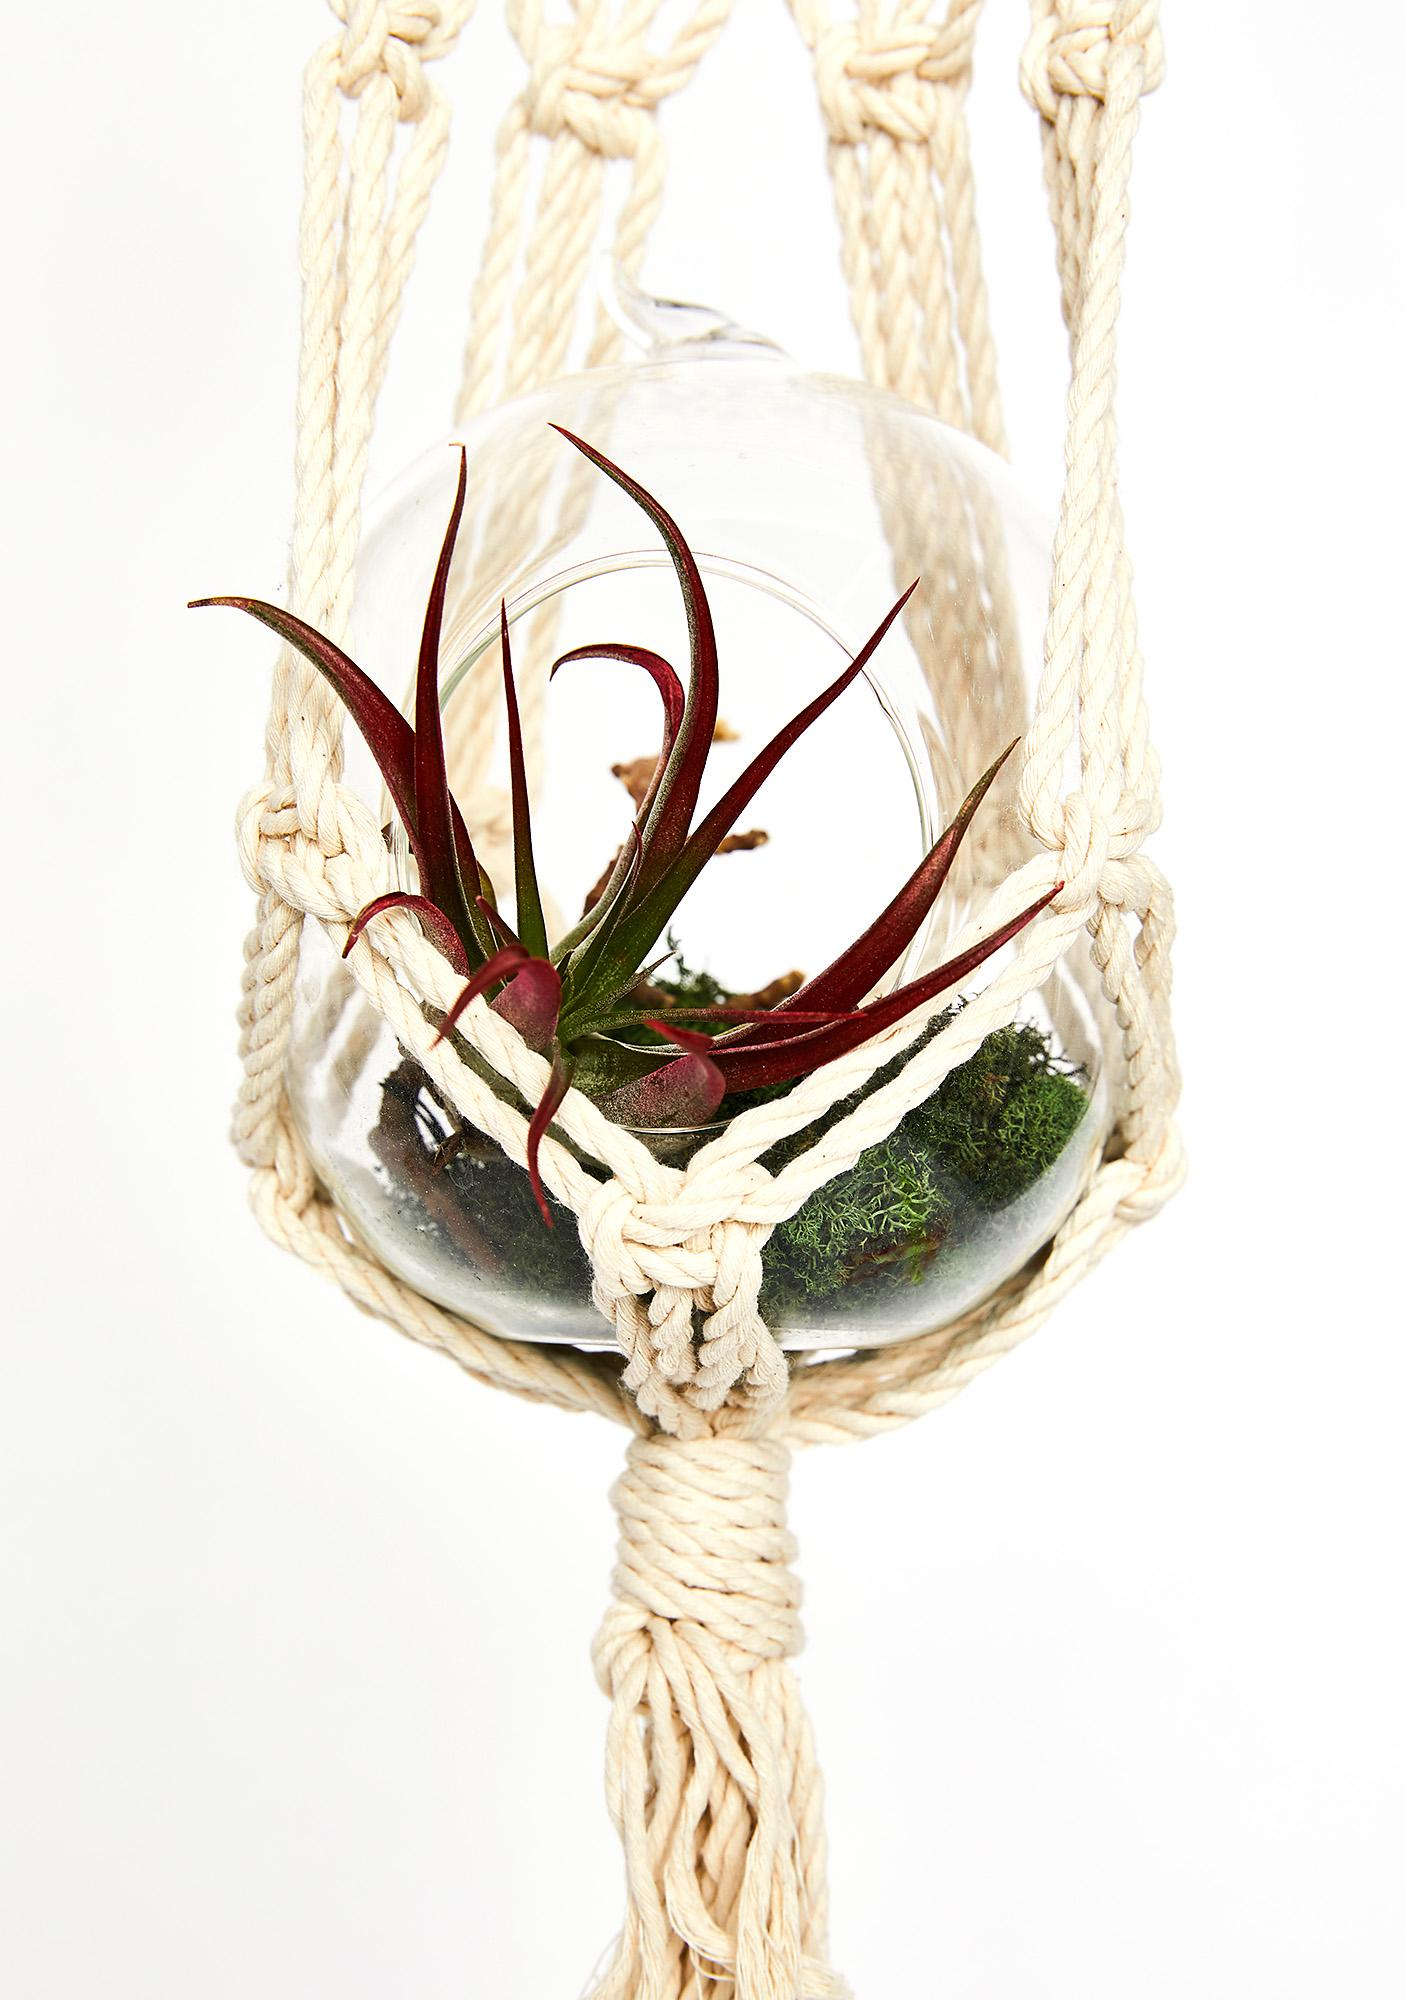 Reef Knot Macrame Wall Plant Hanger